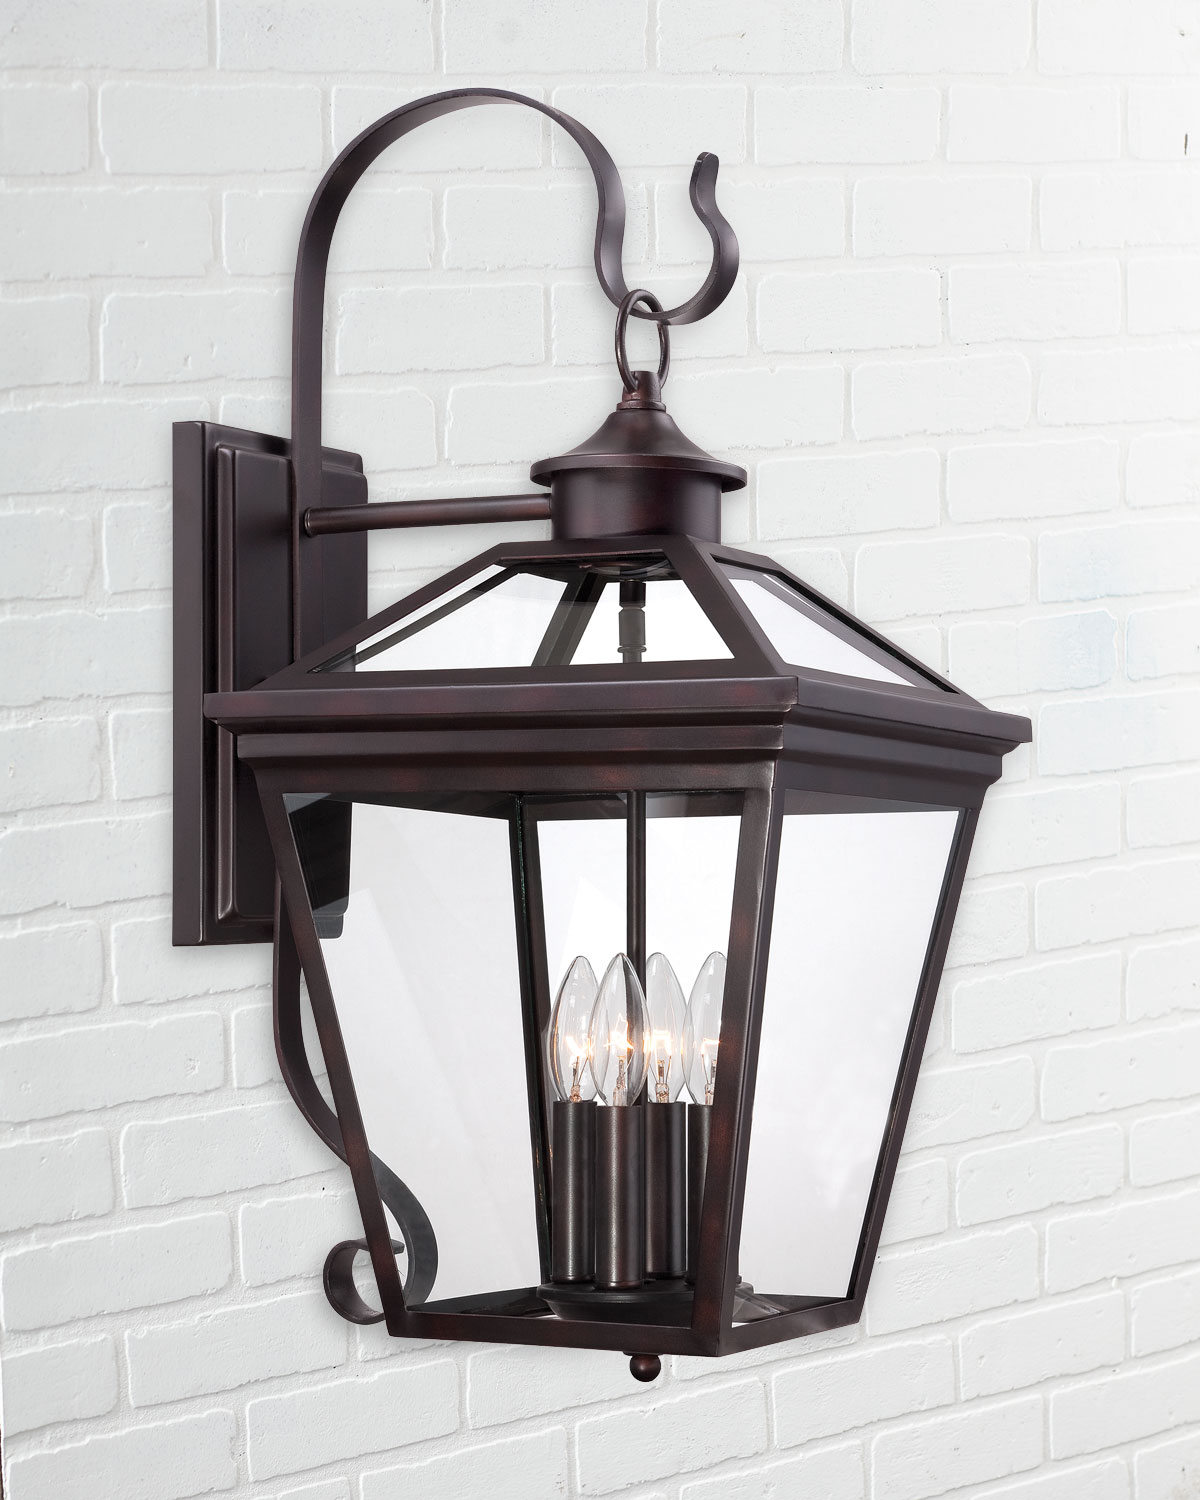 Ellijay Wall Mount Lantern